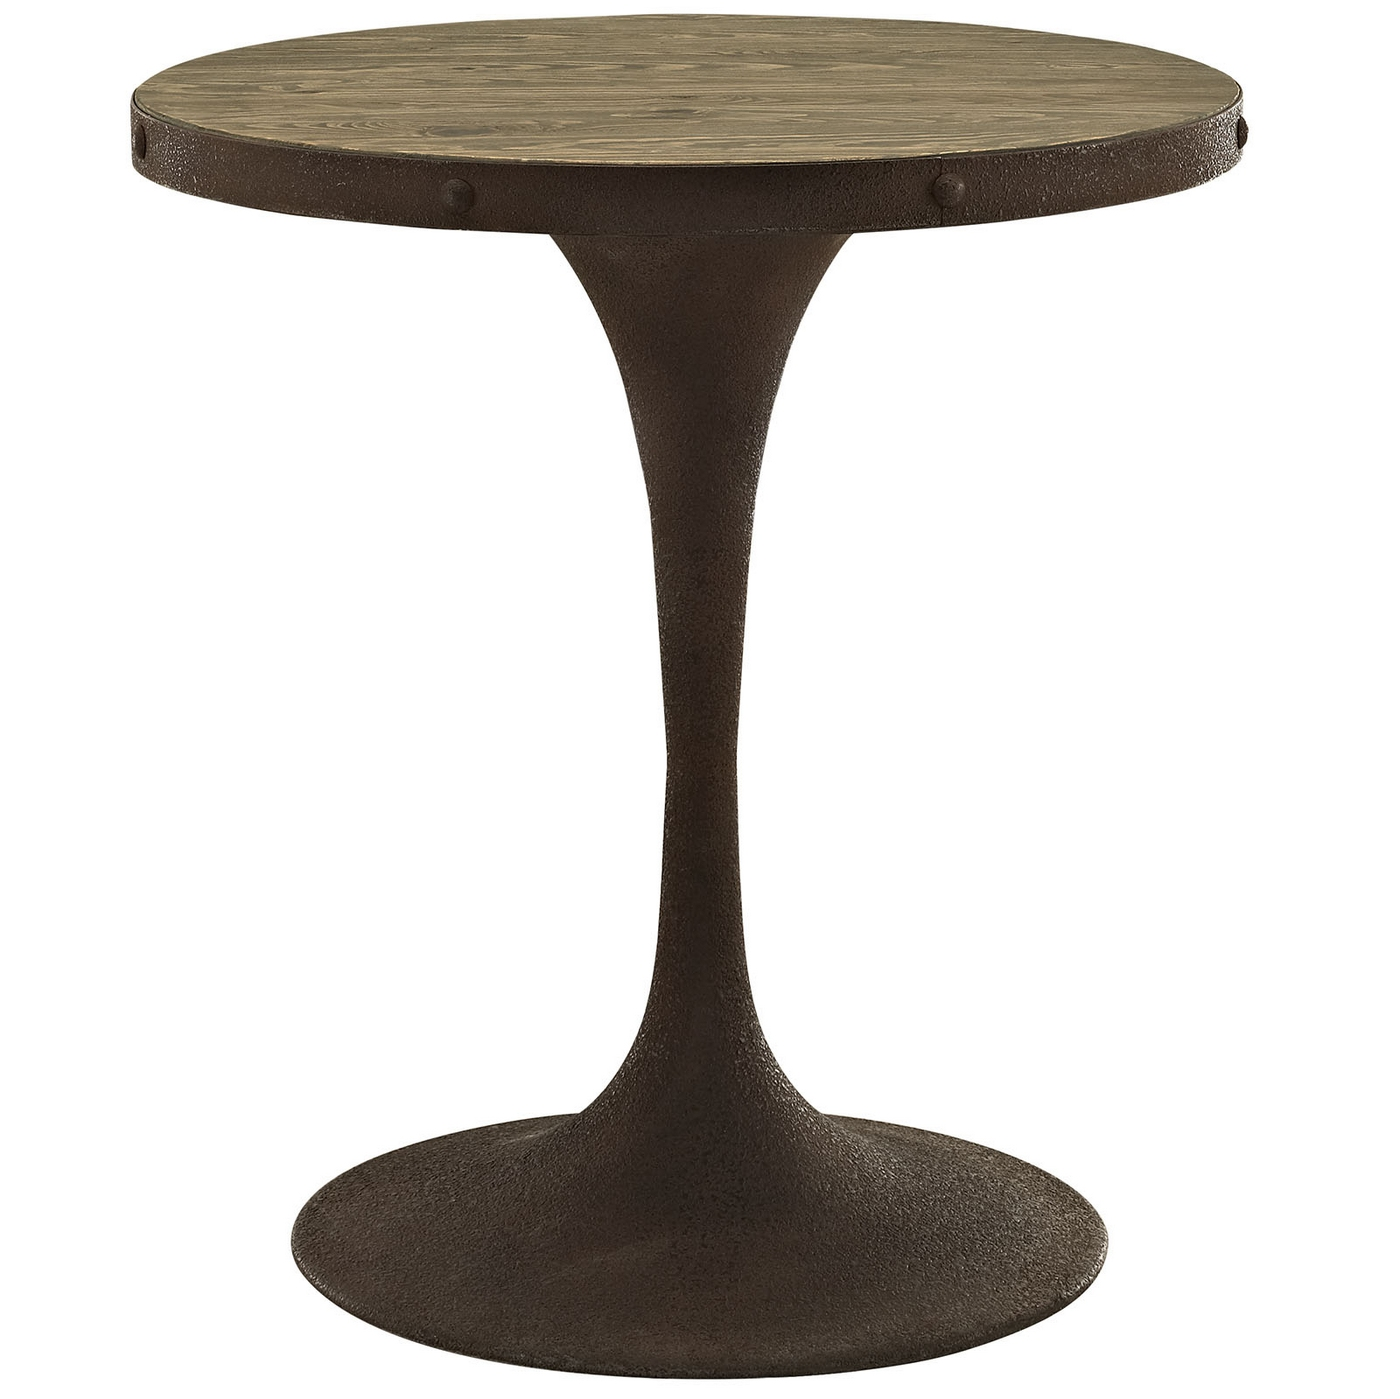 "Wood Round Dining Table: Drive Rustic 28"" Round Wood Top Dining Table W/ Iron"